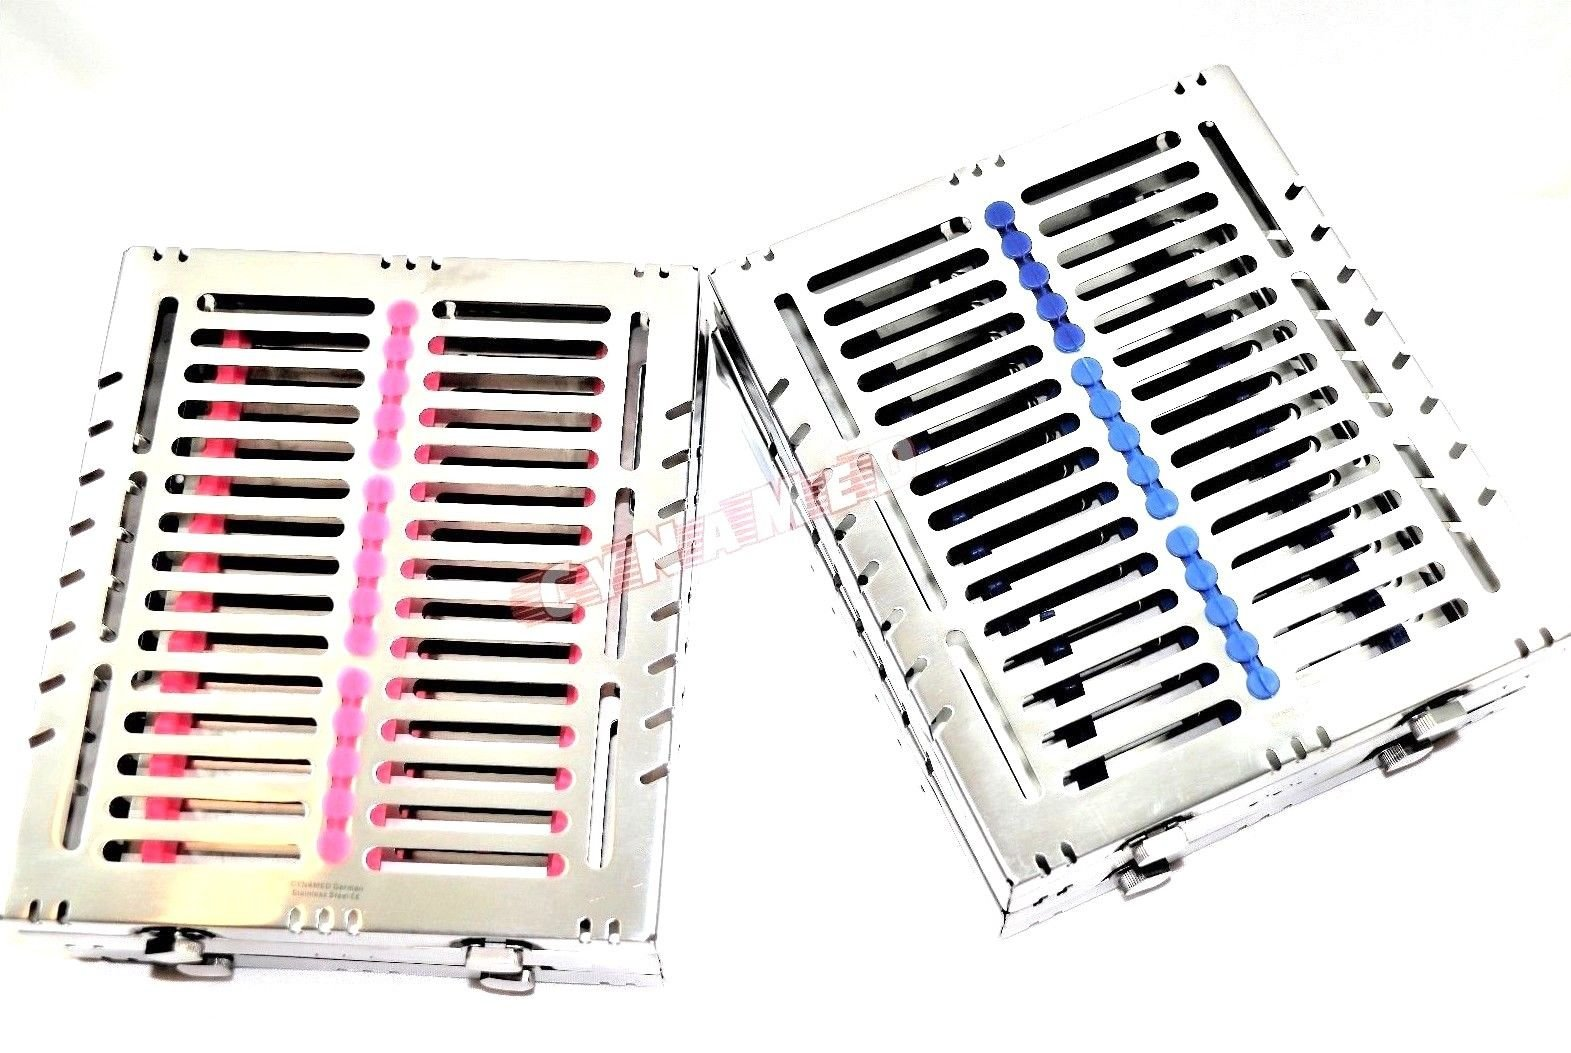 4 German Dental Autoclave Sterilization Cassette Tray for 15 Instruments 8.25X7.25X1.25'' Pink and Blue CYNAMED by CYNAMED (Image #3)